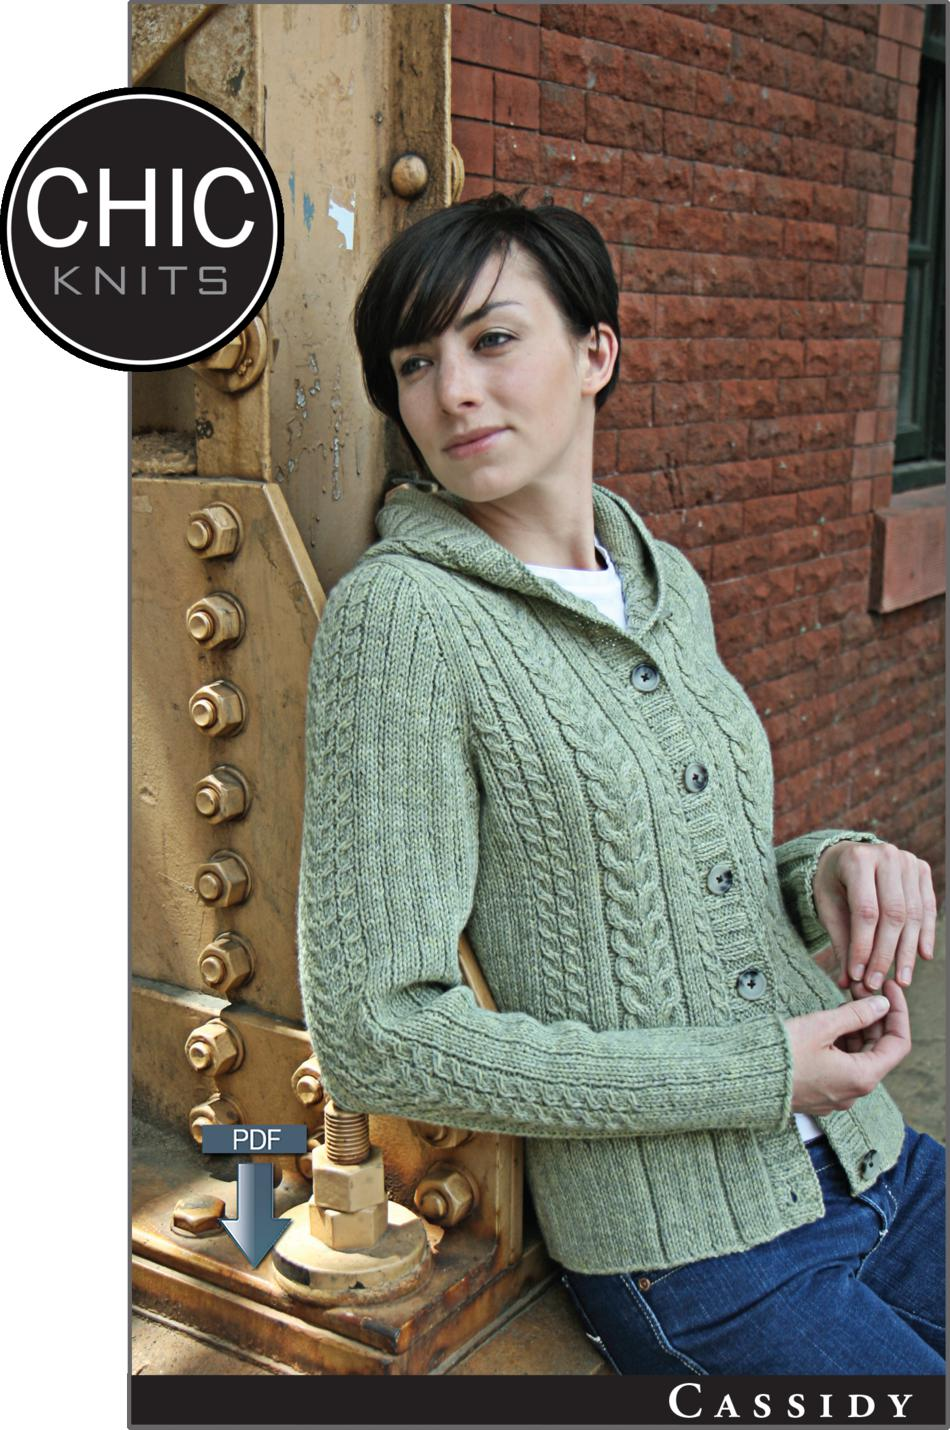 Chic Knits Cassidy Hooded Cardigan - Pattern download, Knitting ...